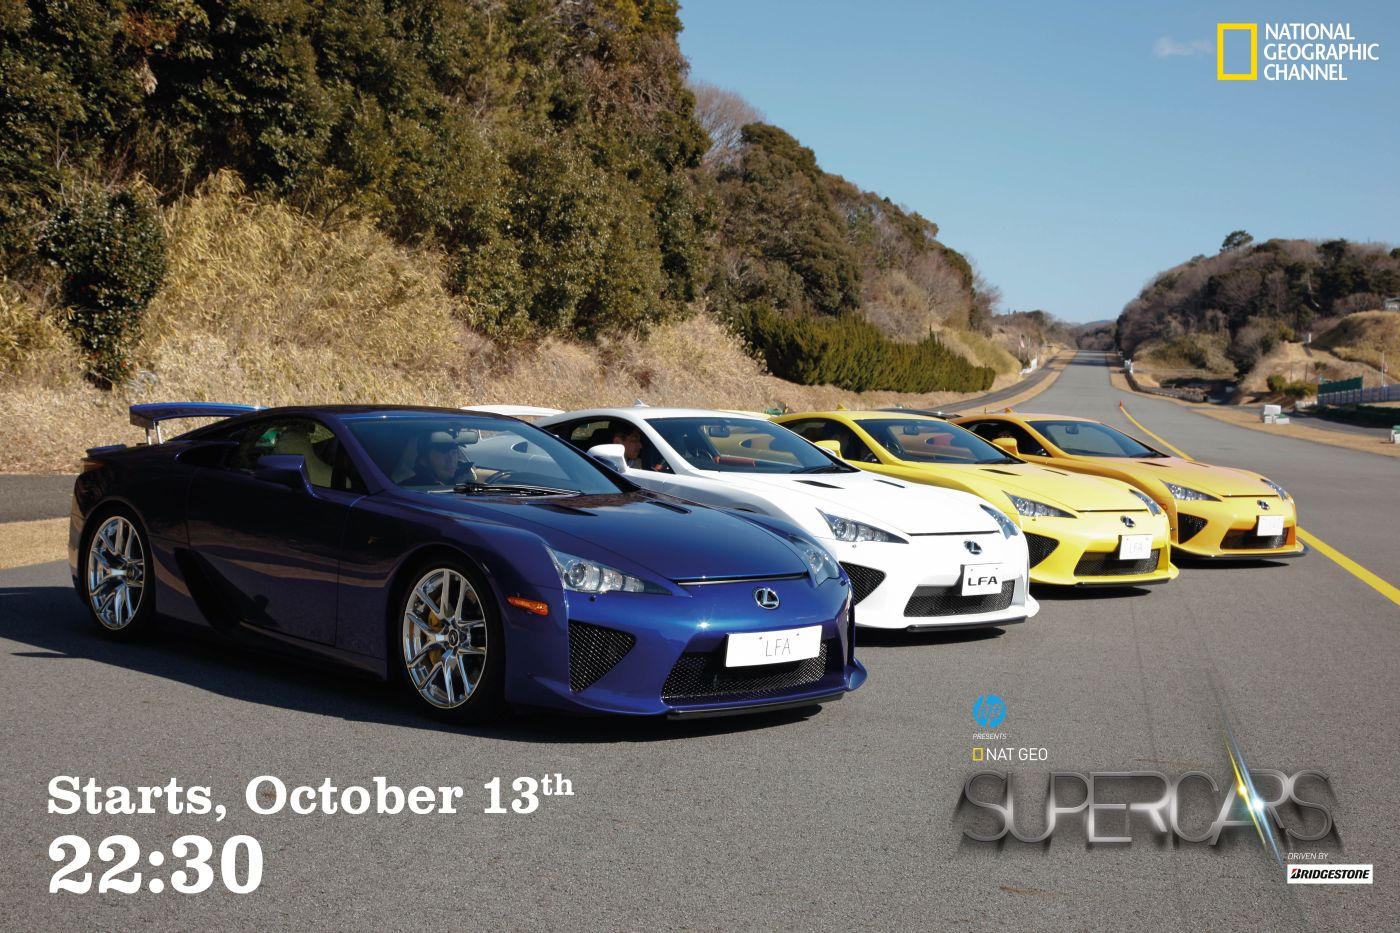 National geographic supercars show back with new series battle of national geographic supercars 2014 sciox Images